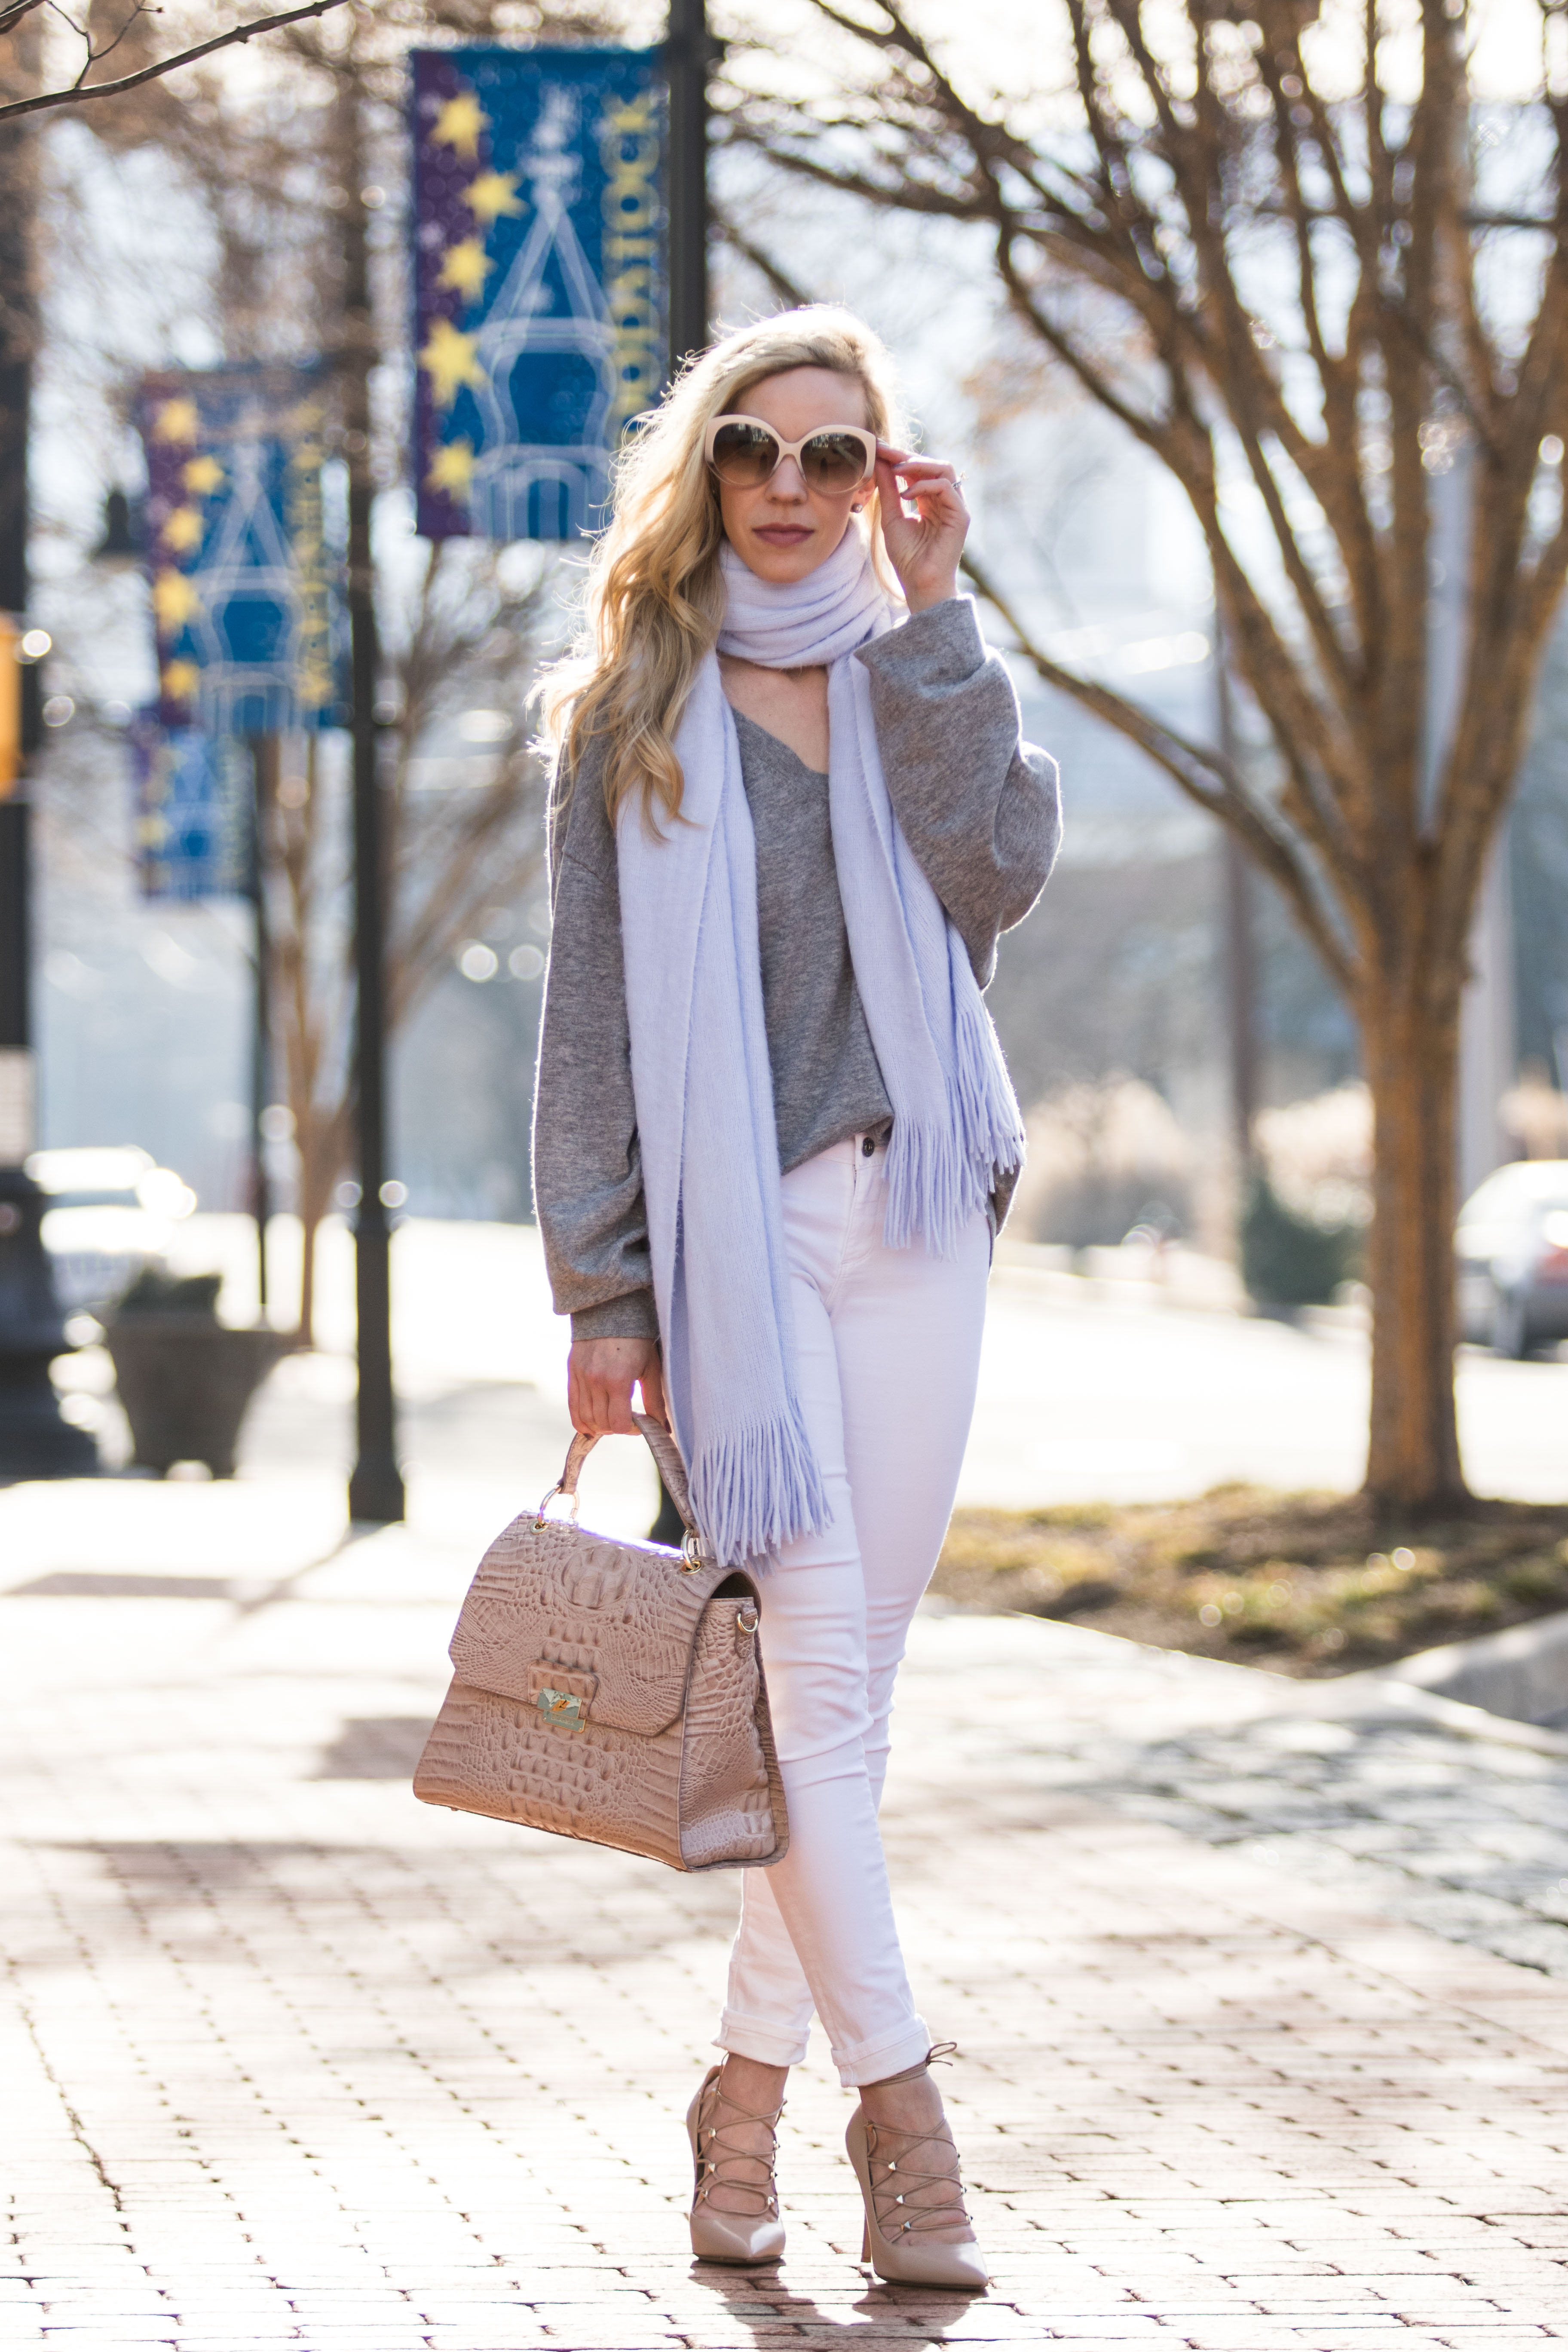 Soft Spring Layers: Light Blue Scarf, White Jeans & Blush Details